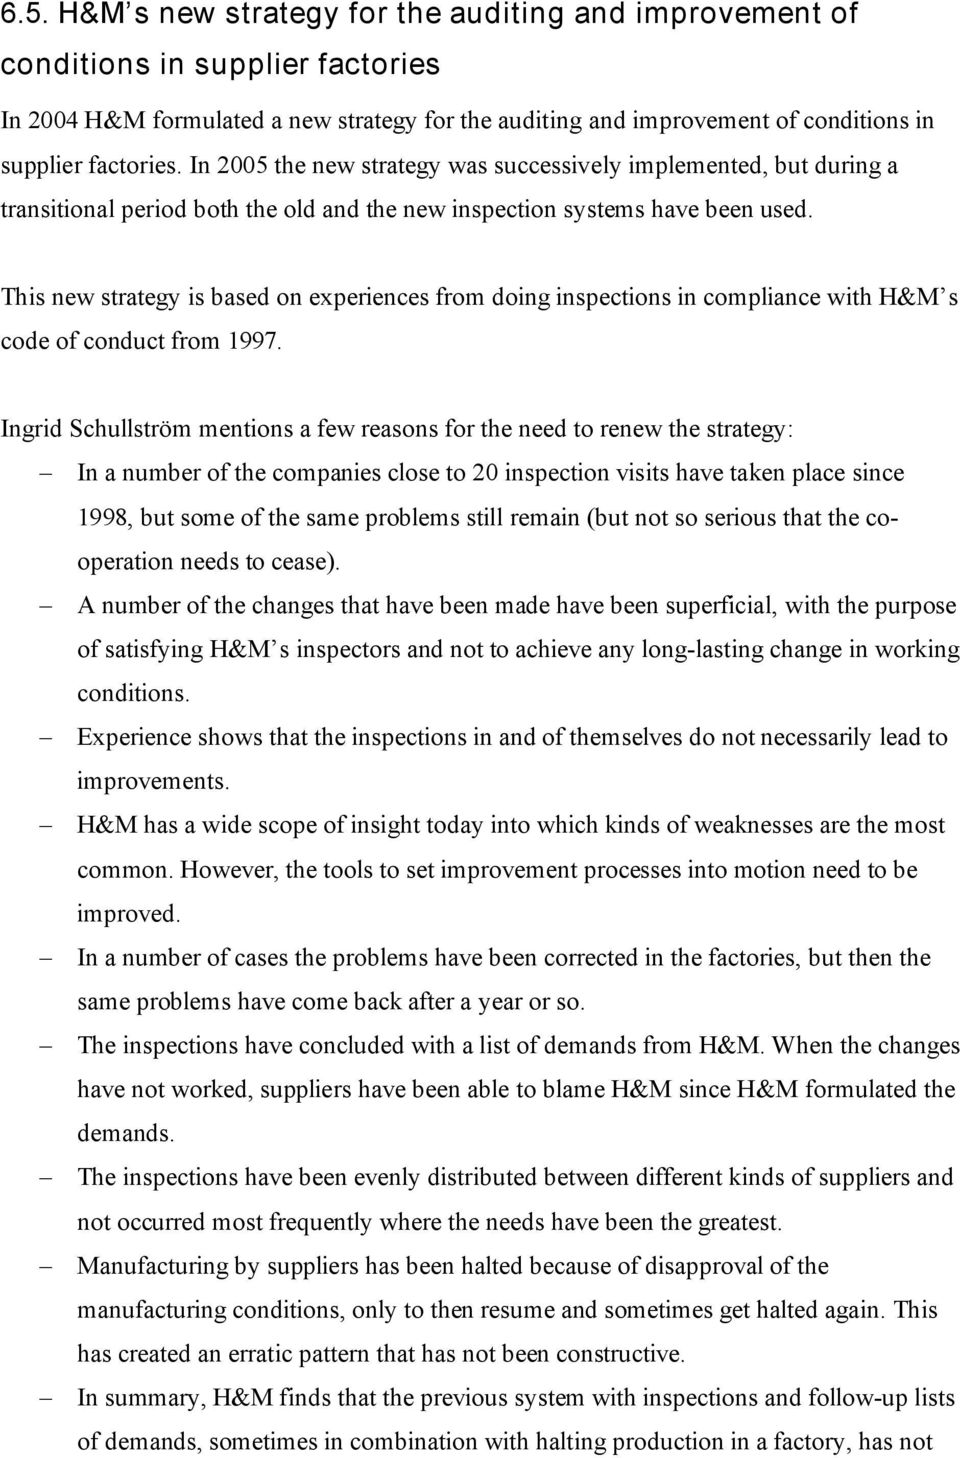 H&M s infrastructure for the auditing and improvement of working ...